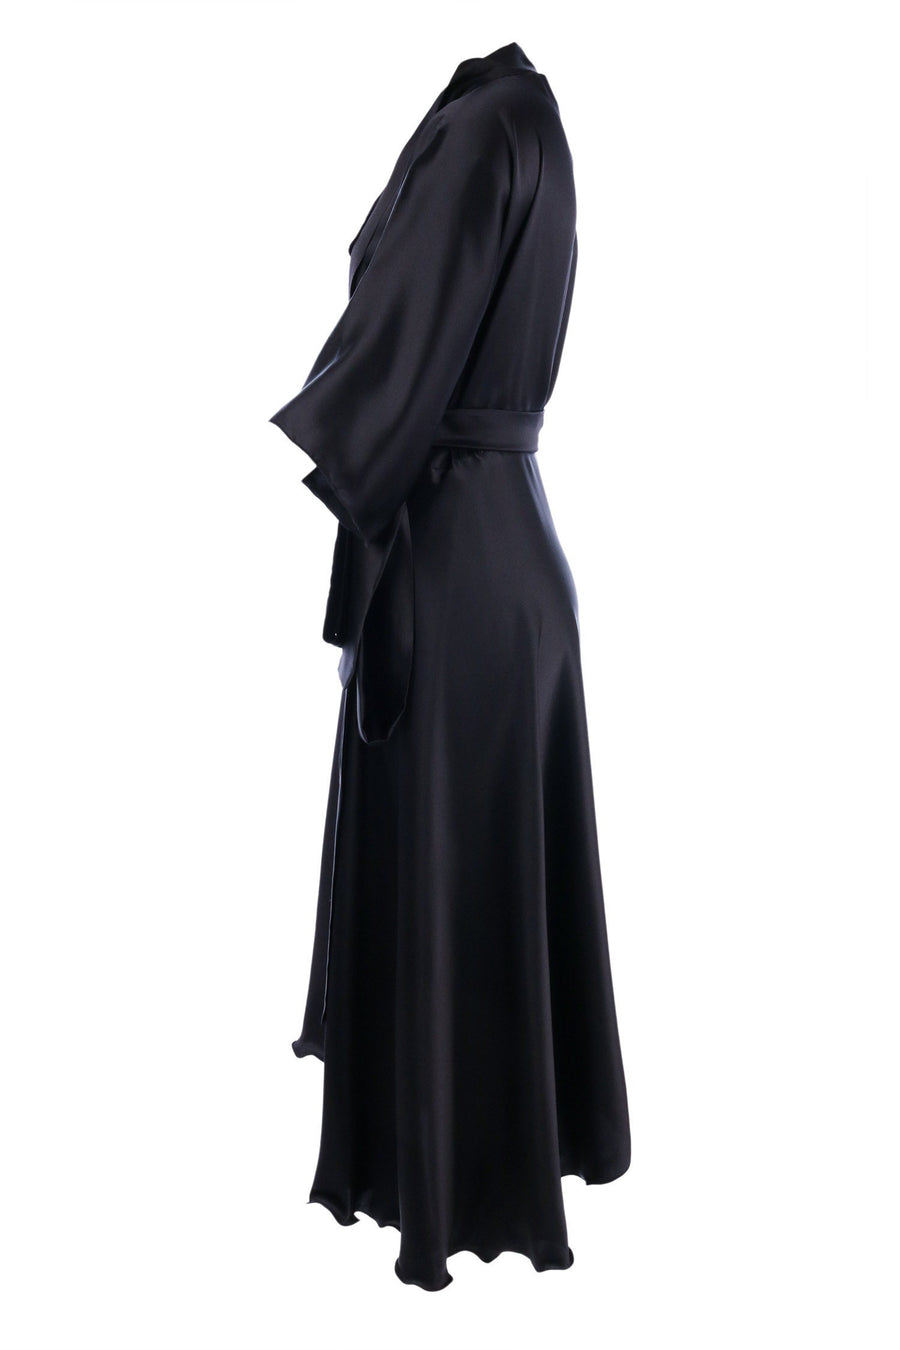 bella-wrap-in-black-silk-crepe-by-lucy-laurita